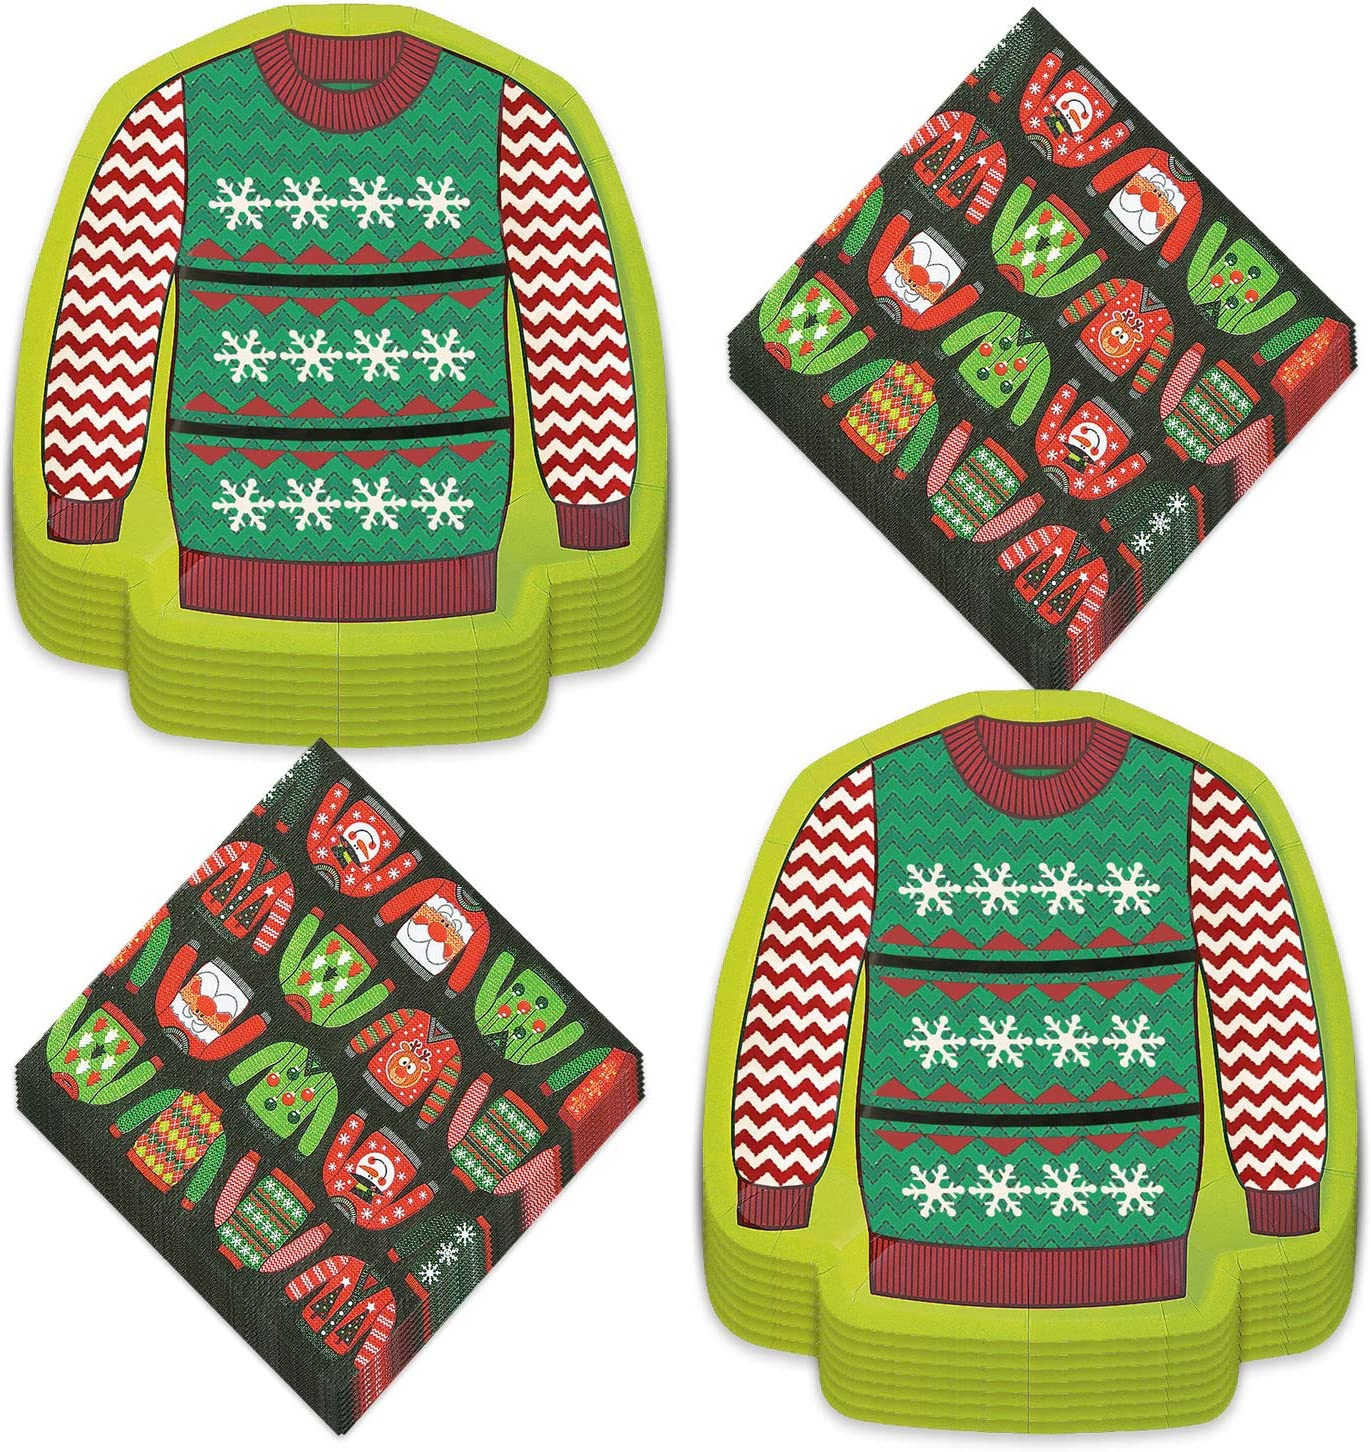 Ugly Sweater Party Supplies - Dessert Plates and Beverage Napkins For Tacky Sweater Holiday Christmas Parties (Serves 16)